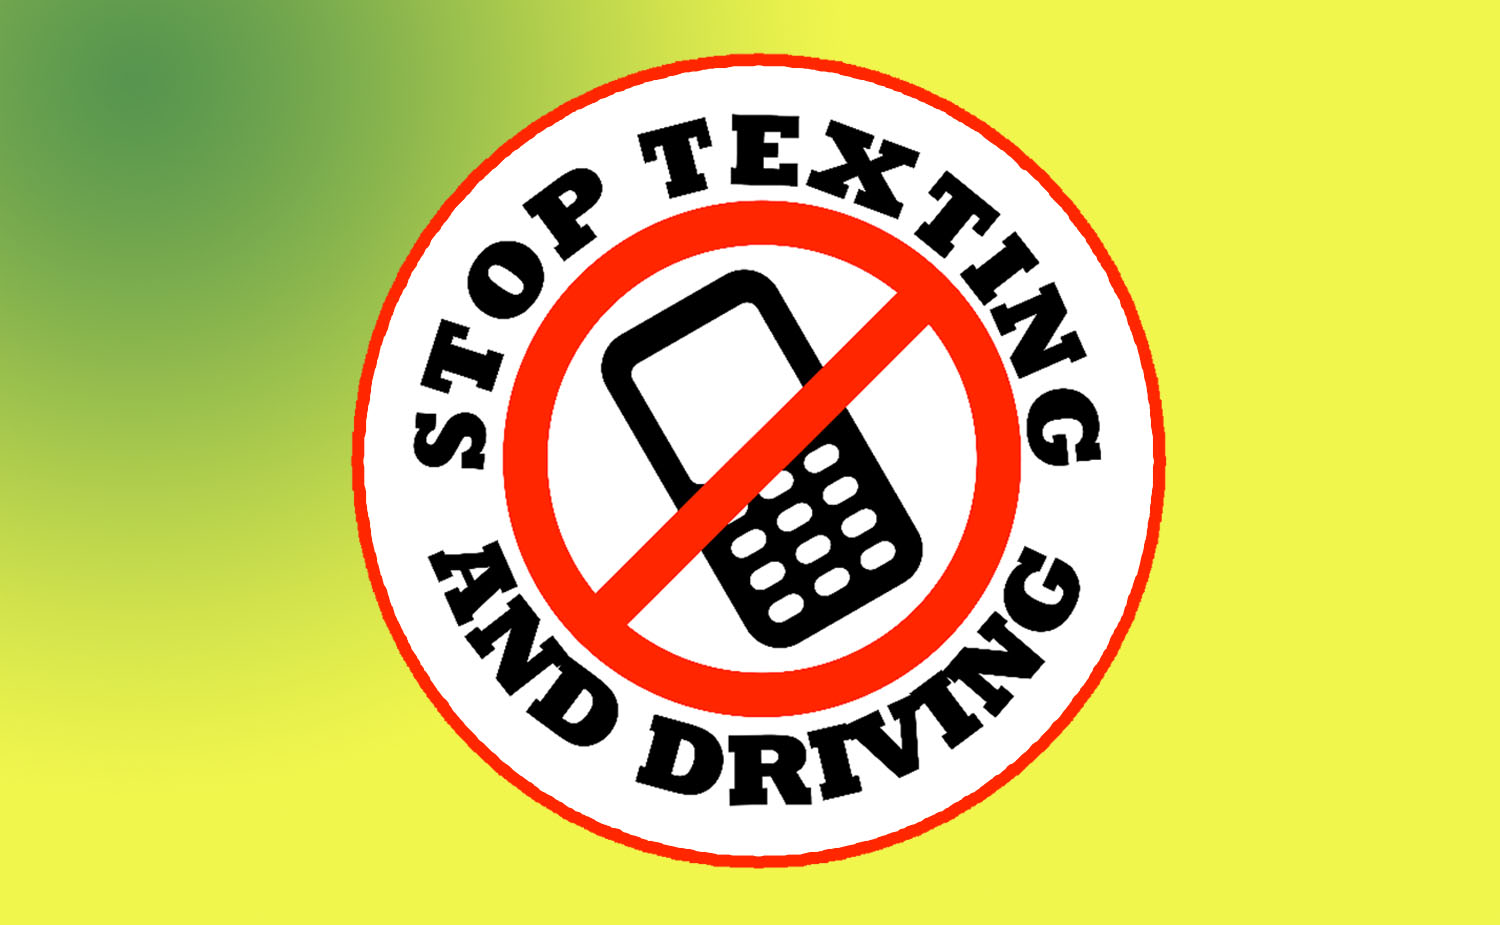 Village of Geneseo Police Department Focusing on Distracted Driving Enforcement